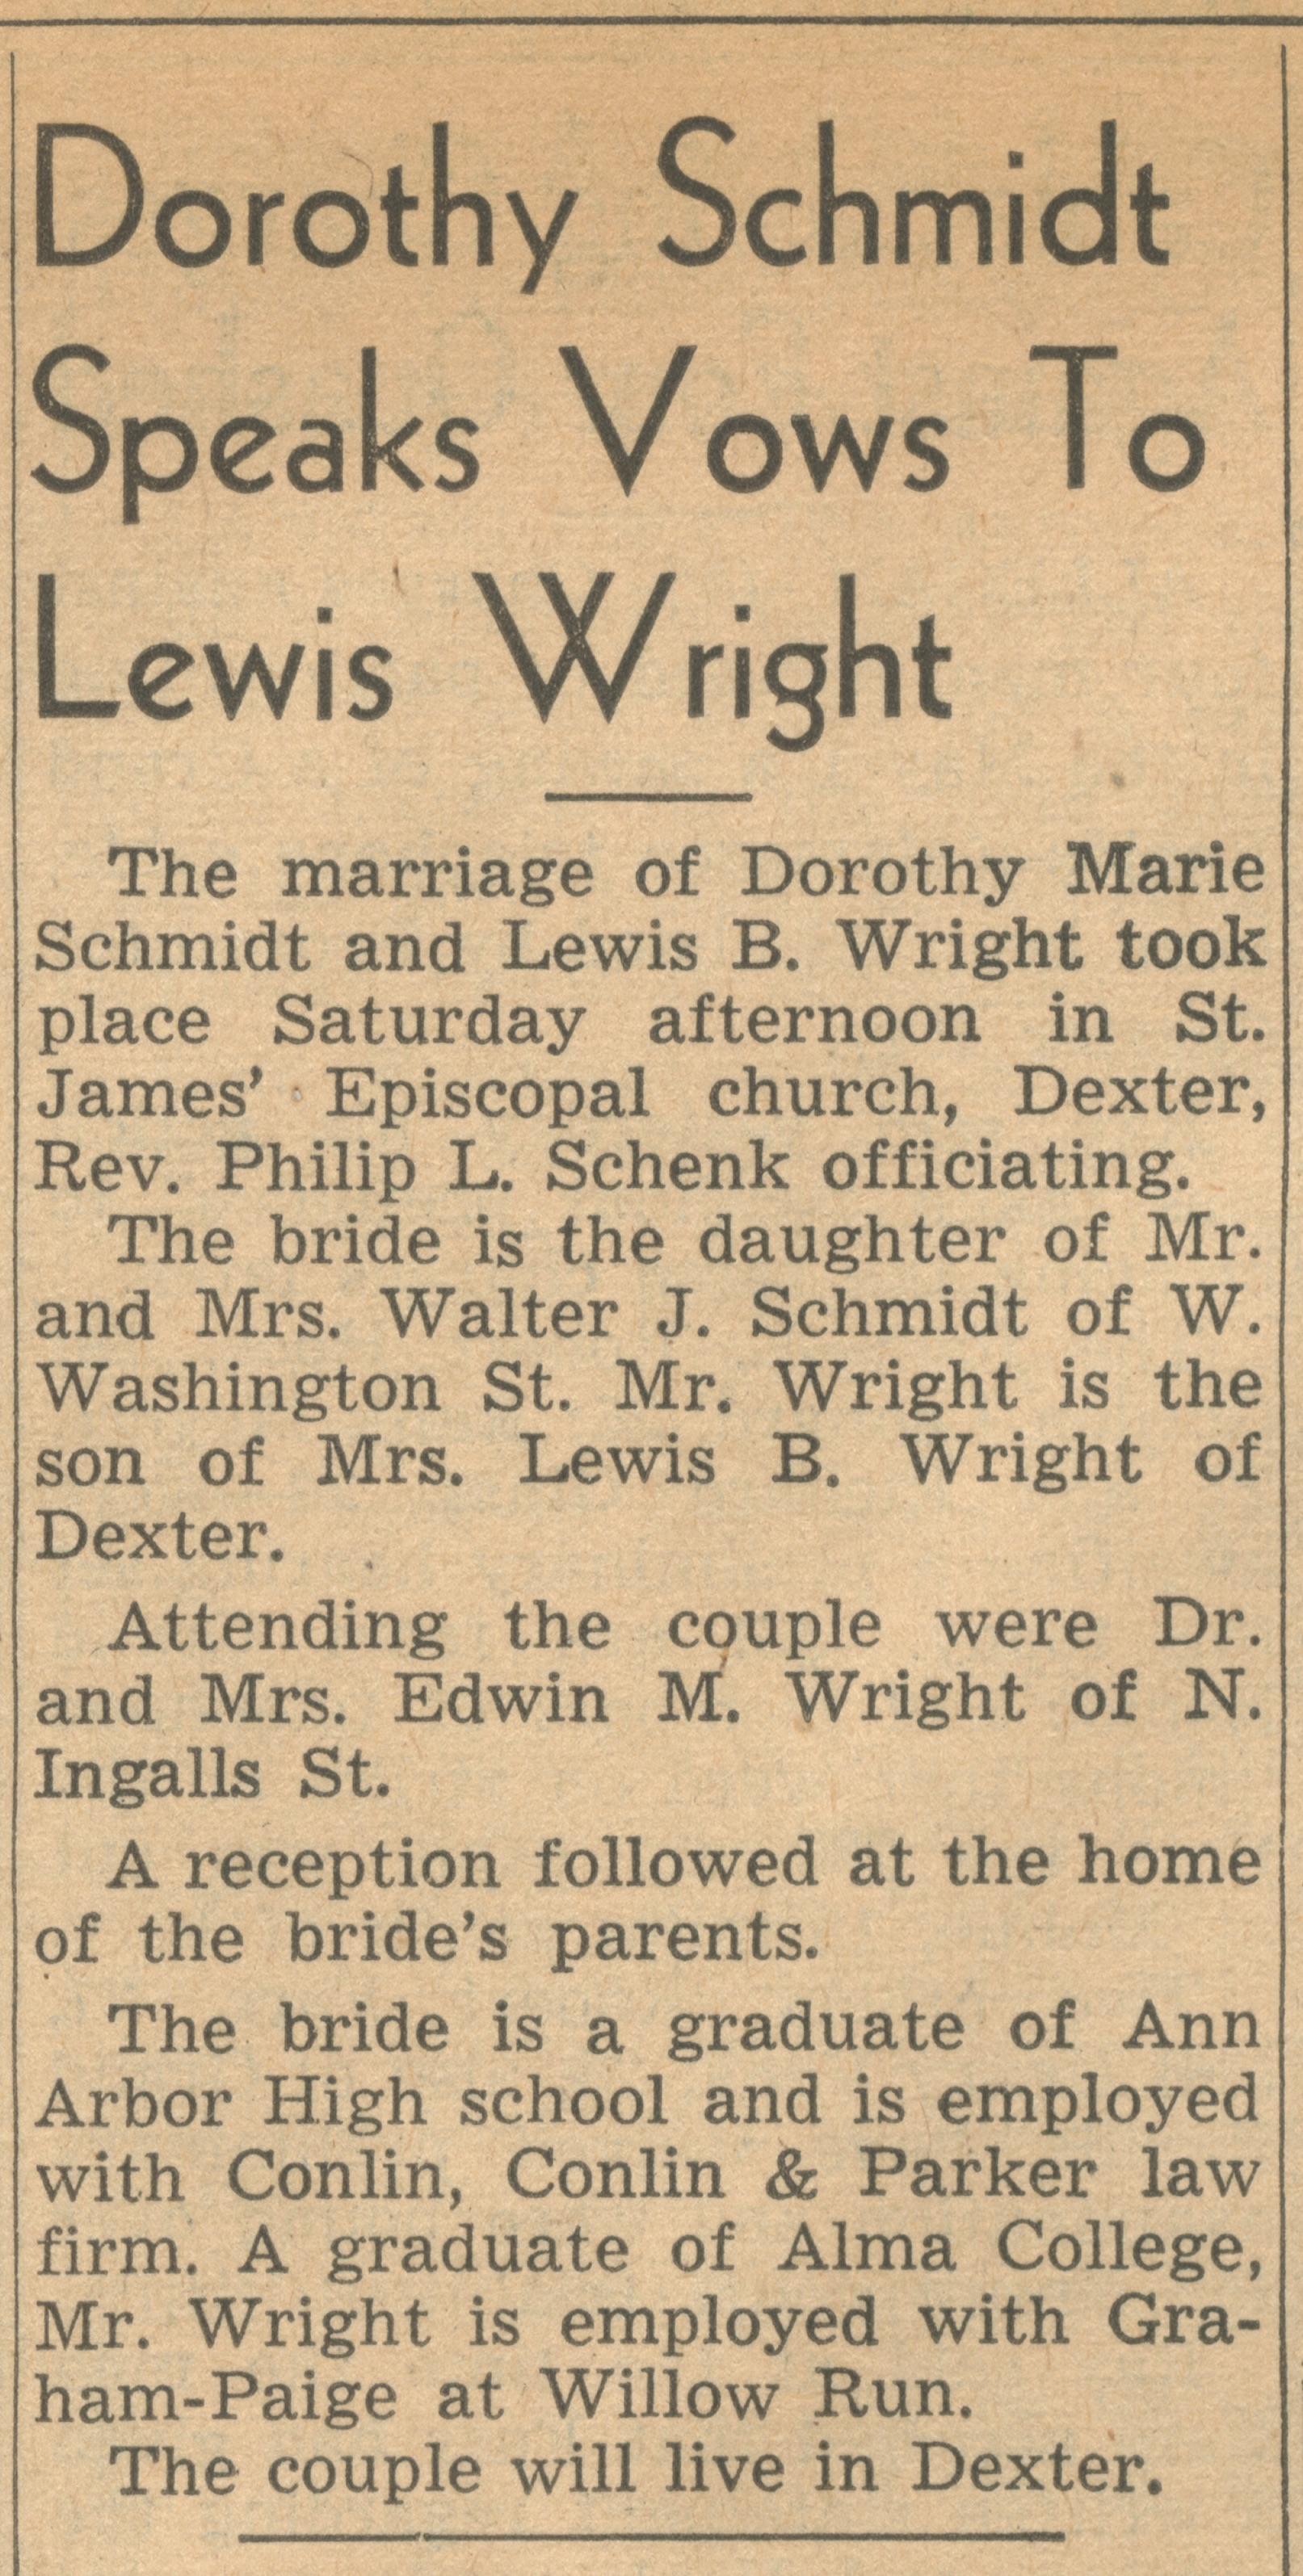 Dorothy Schmidt Speaks Vows To Lewis Wright image